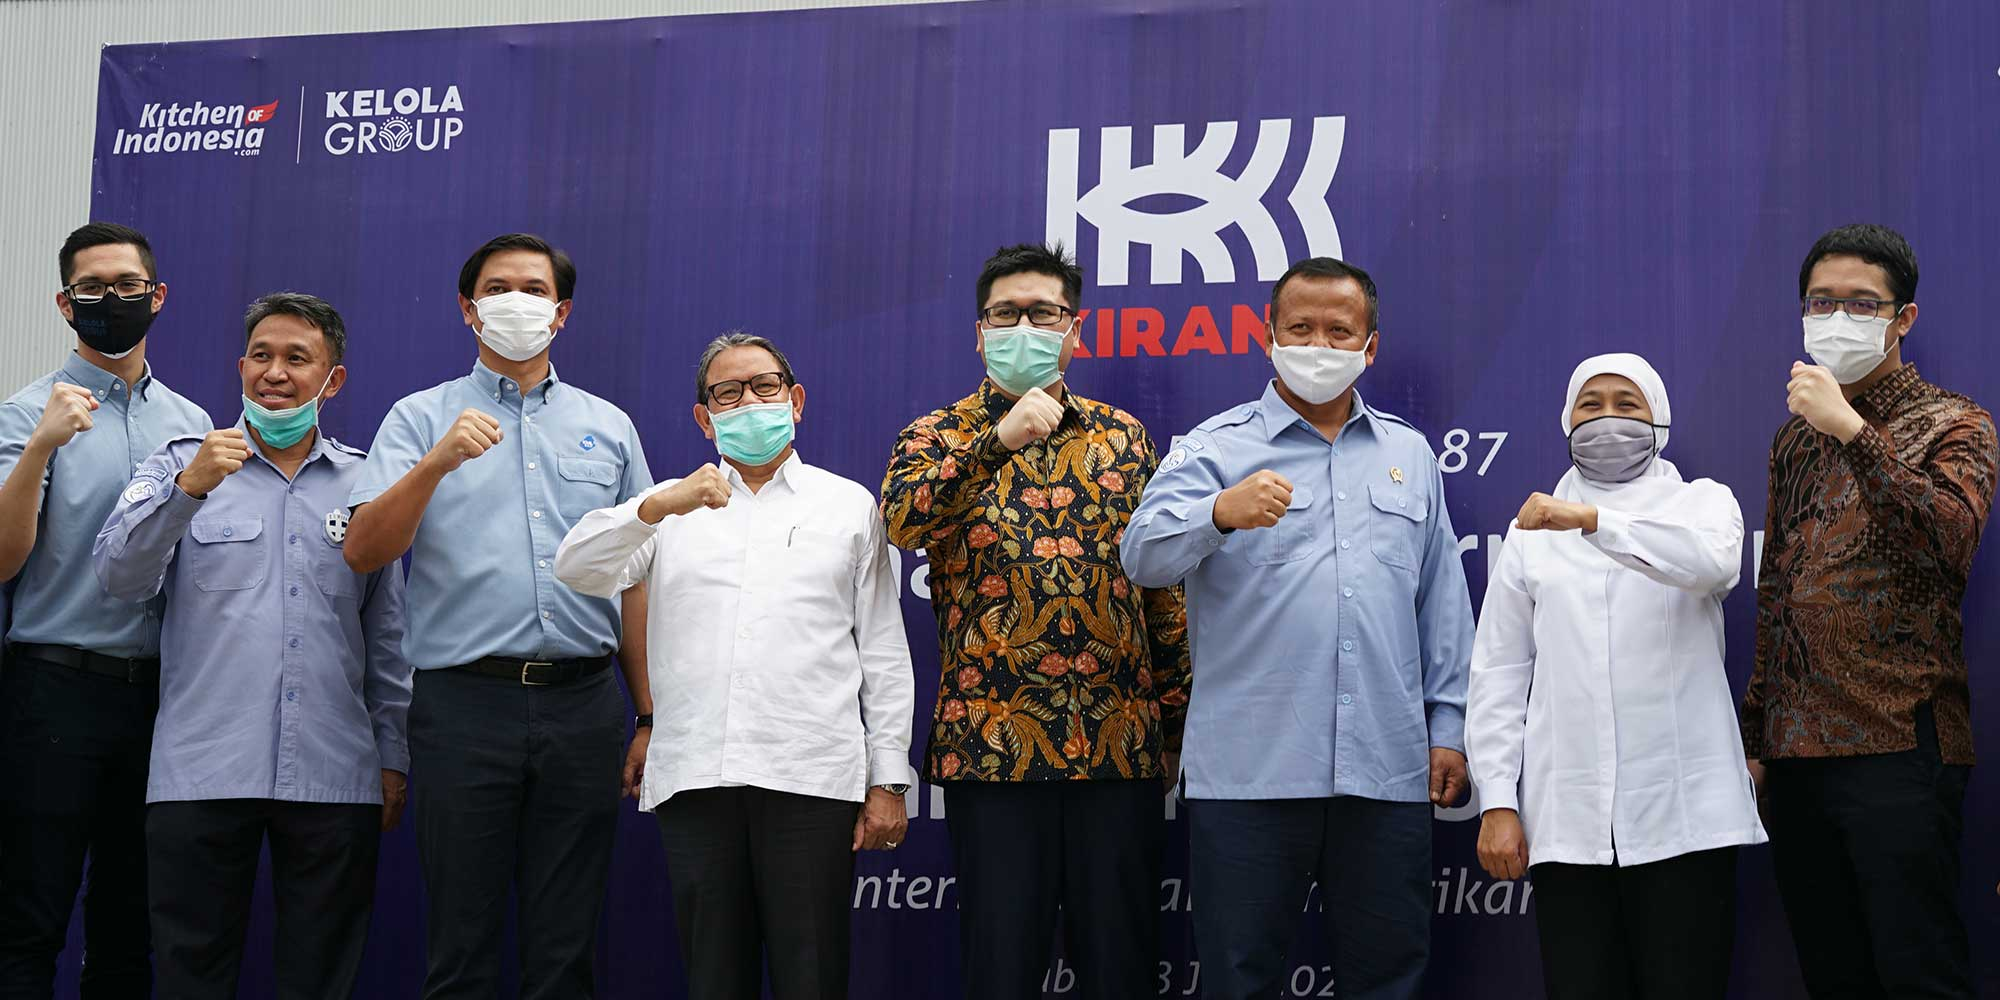 The Minister of Maritime Affairs and Fisheries visited Kirana Food